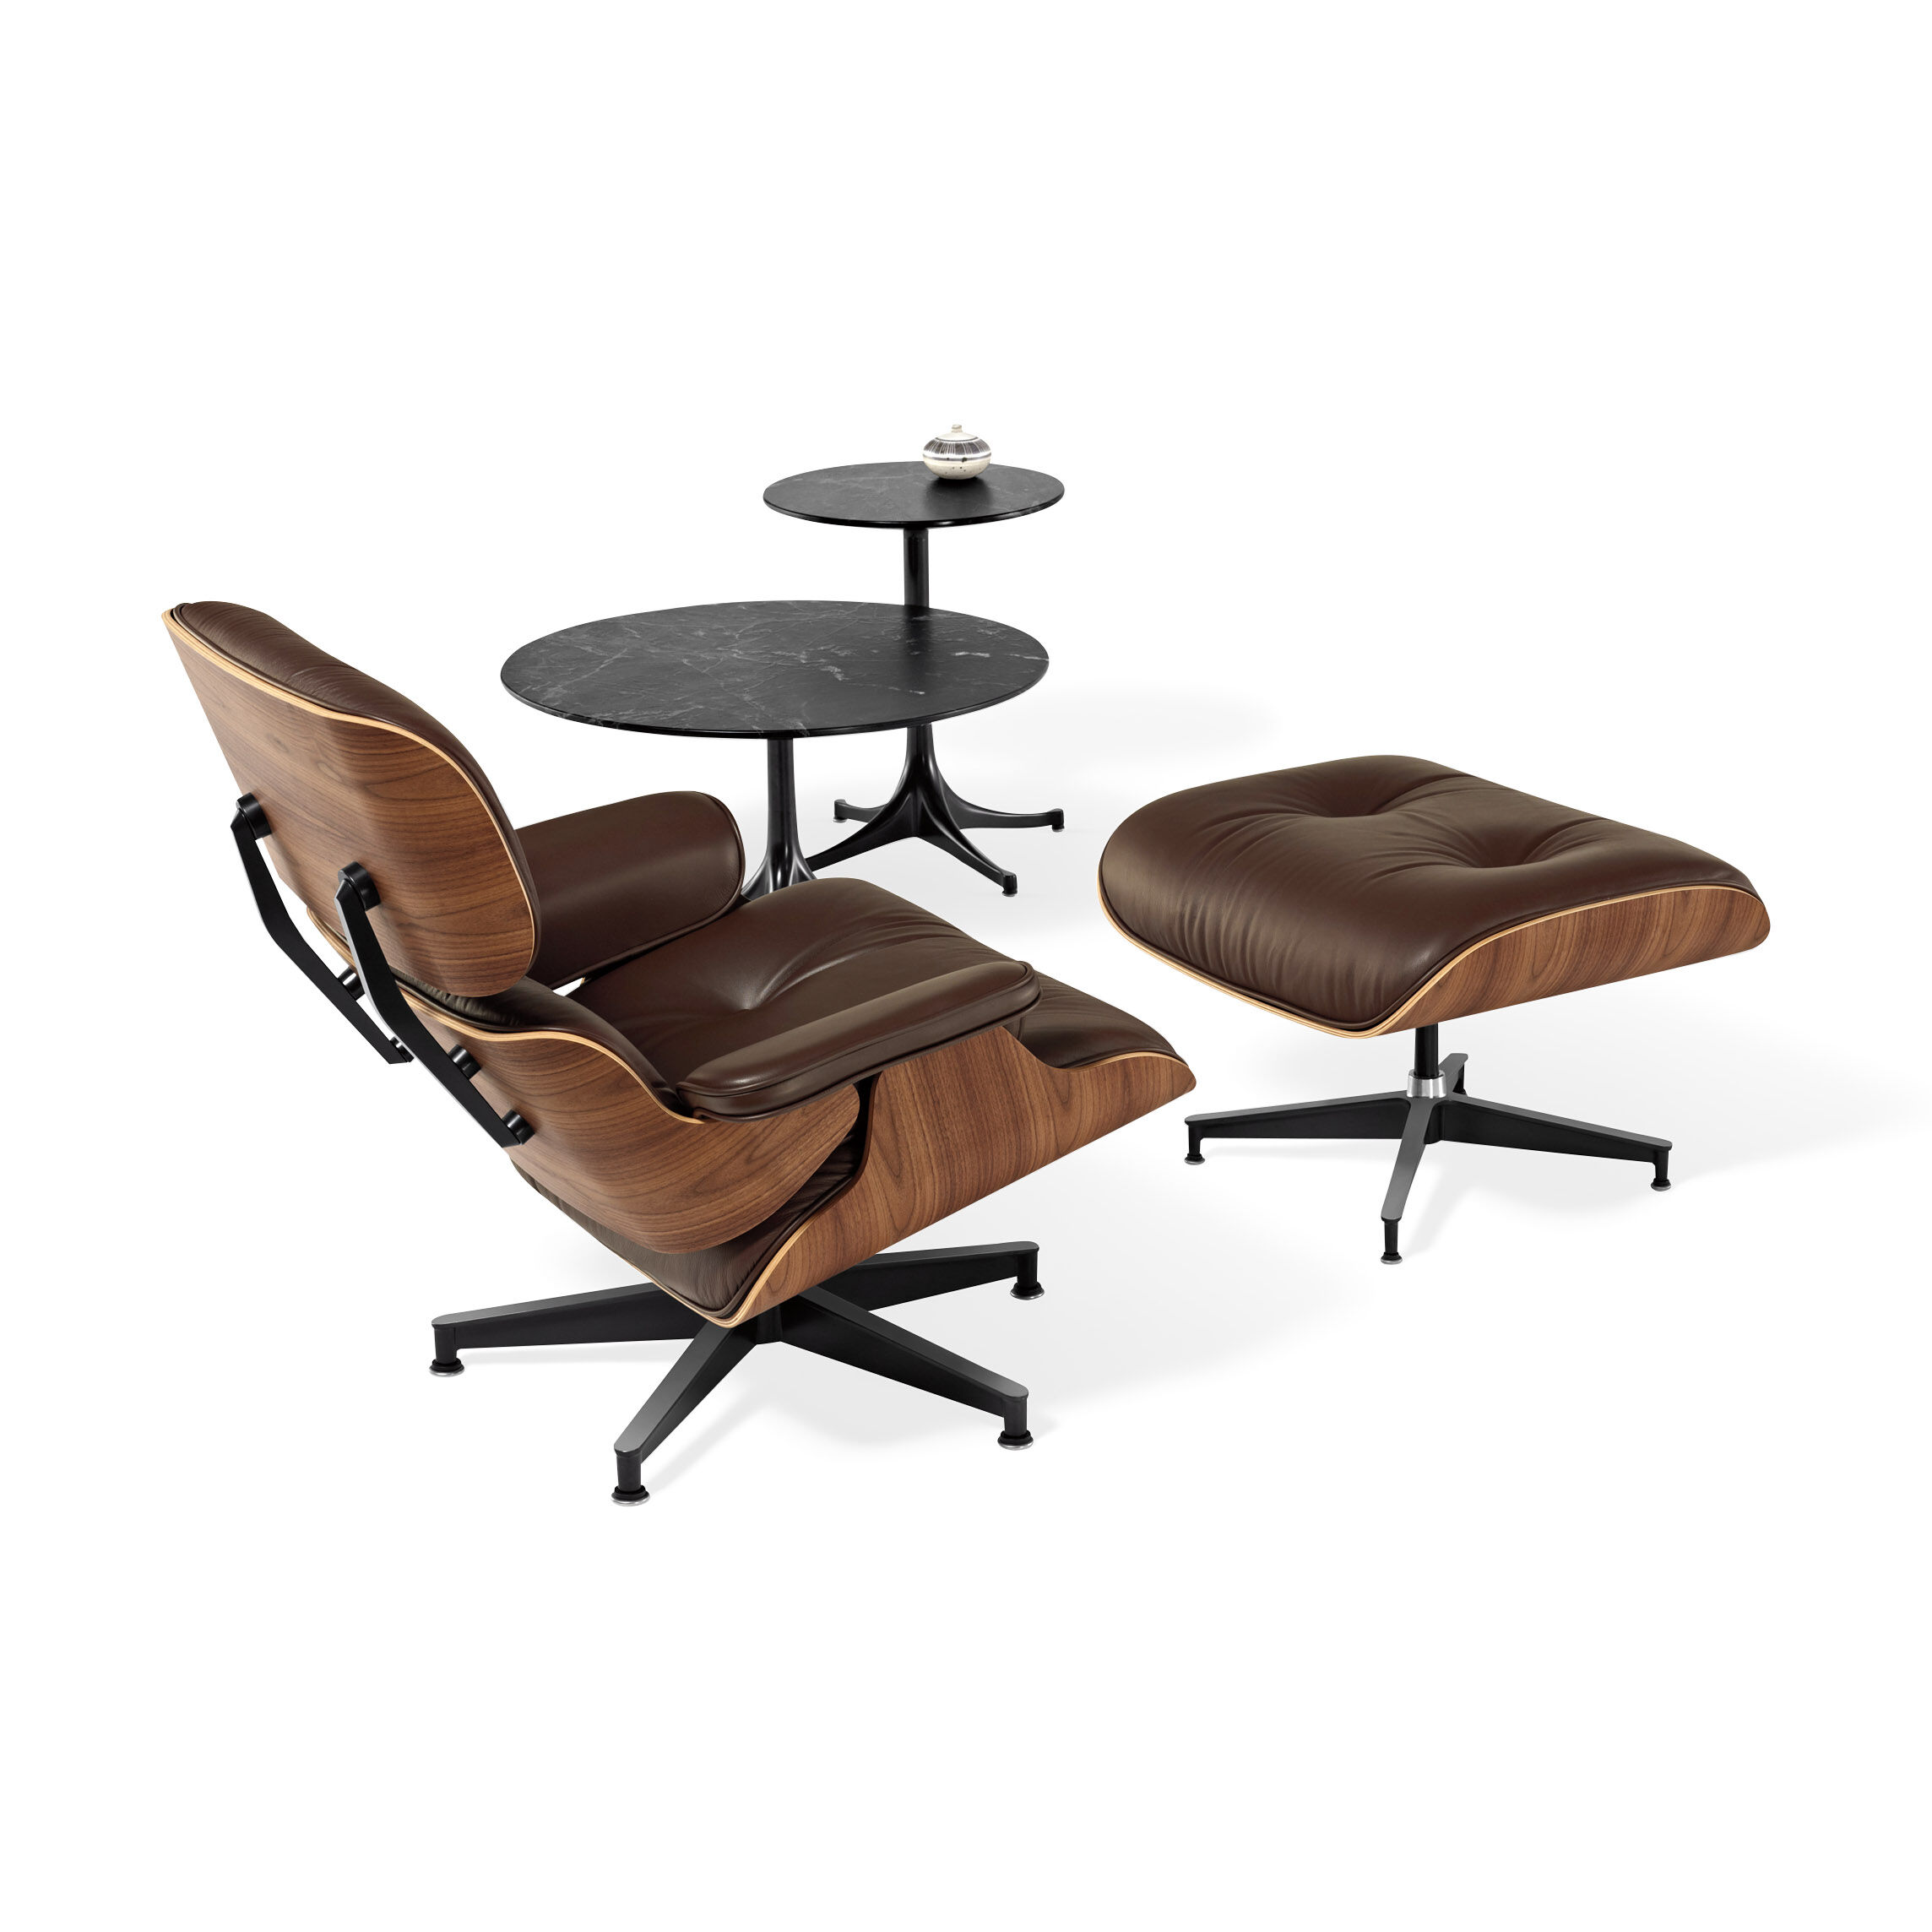 Eames Lounge Chair Brown Leather Walnut Panel In Color Brown/ Walnut